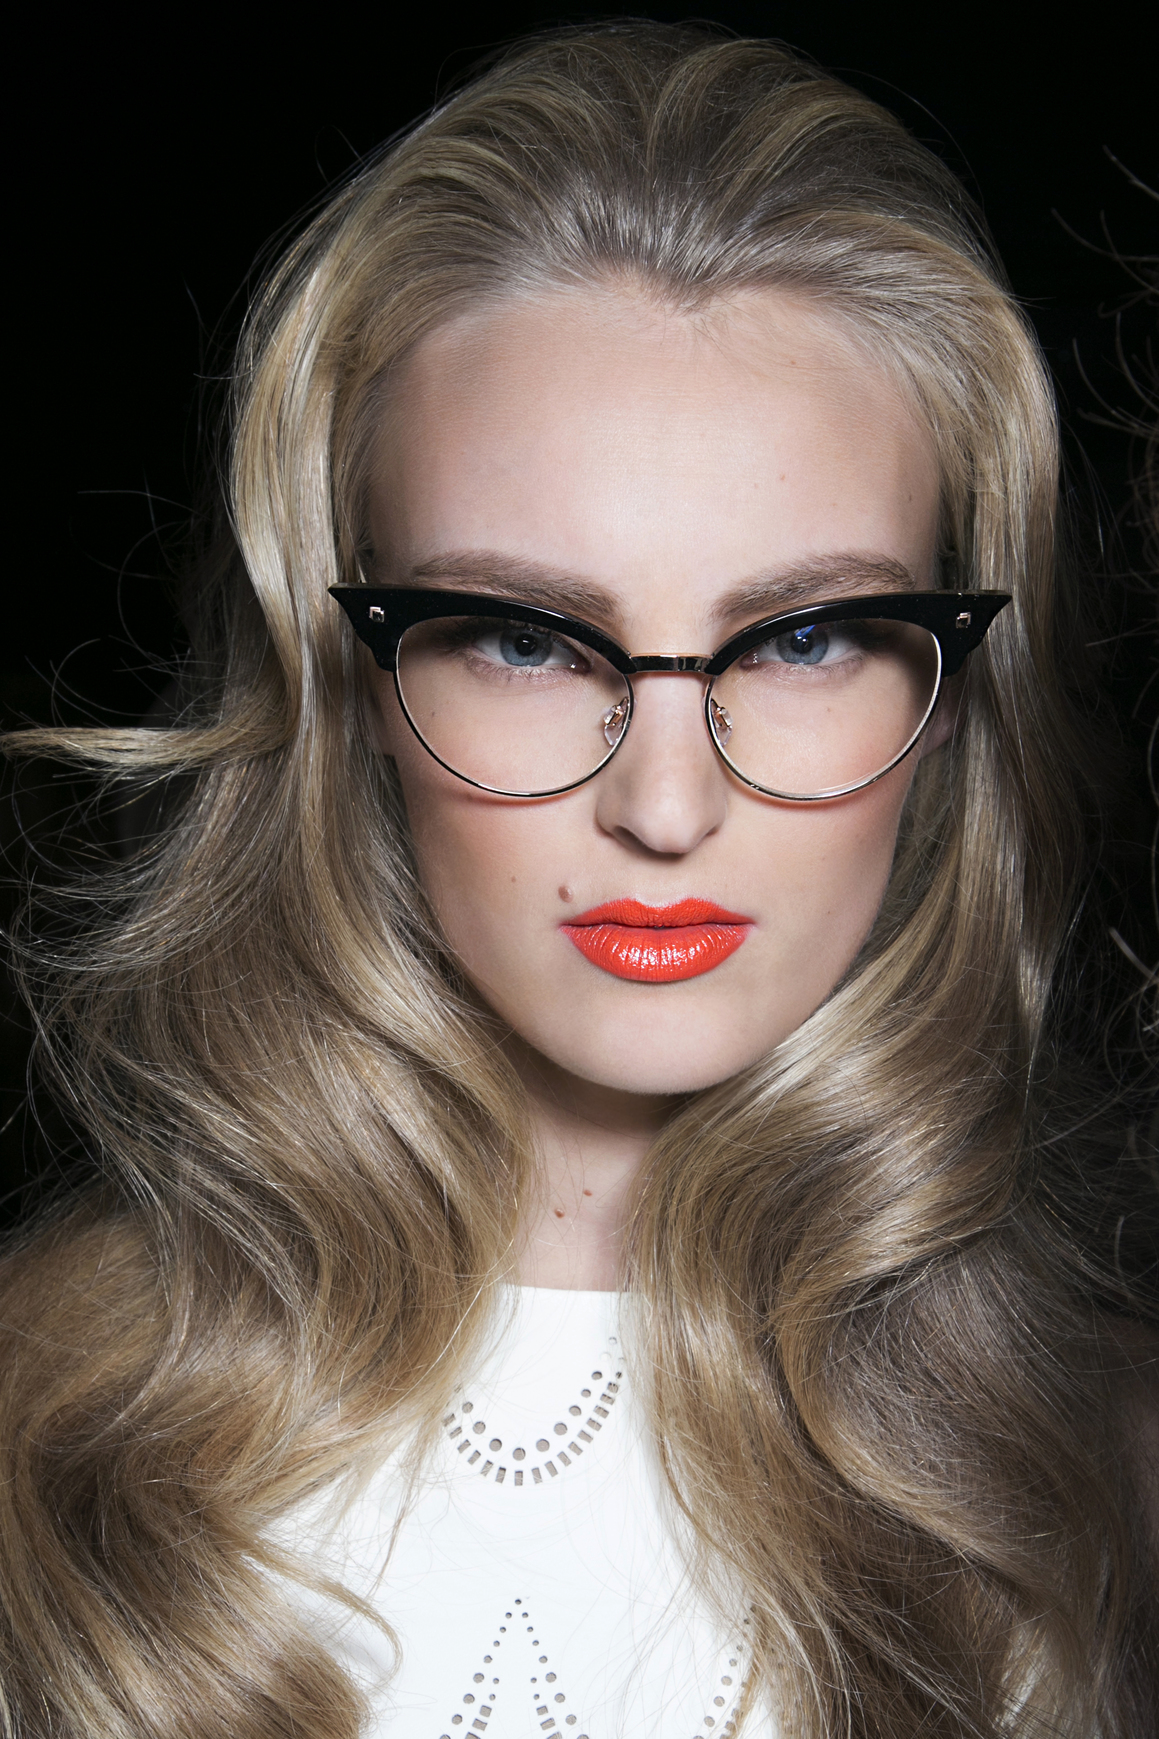 glasses Wearing Makeup With Glasses: 6 Areas to Focus On